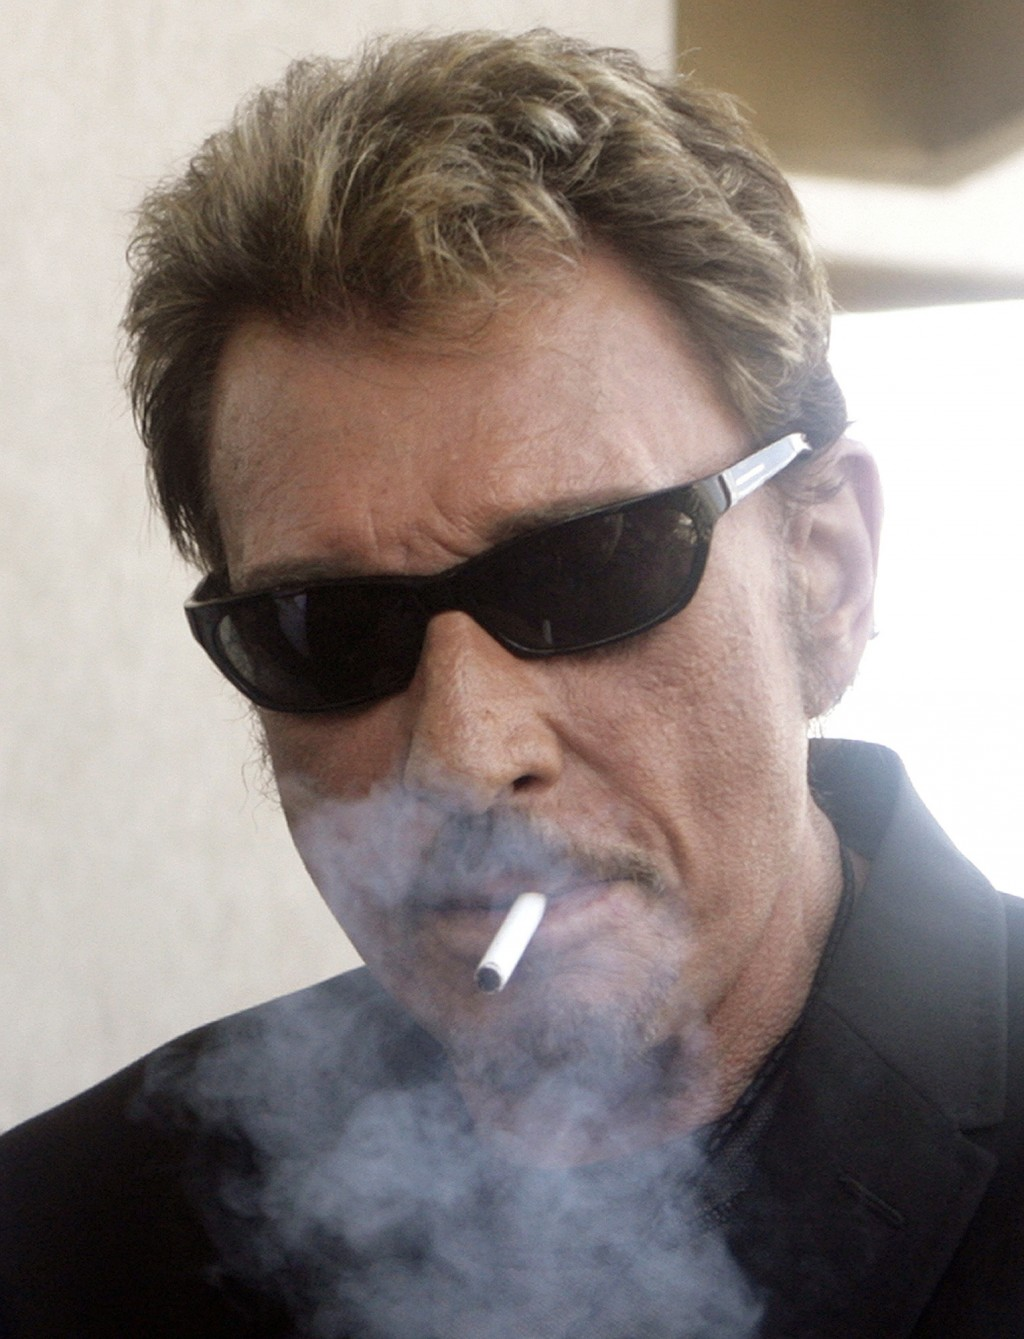 FILE - This Monday, May 18, 2009, file photo shows French actor and singer Johnny Hallyday in Cannes, southern France. Johnny Hallyday, France's bigge